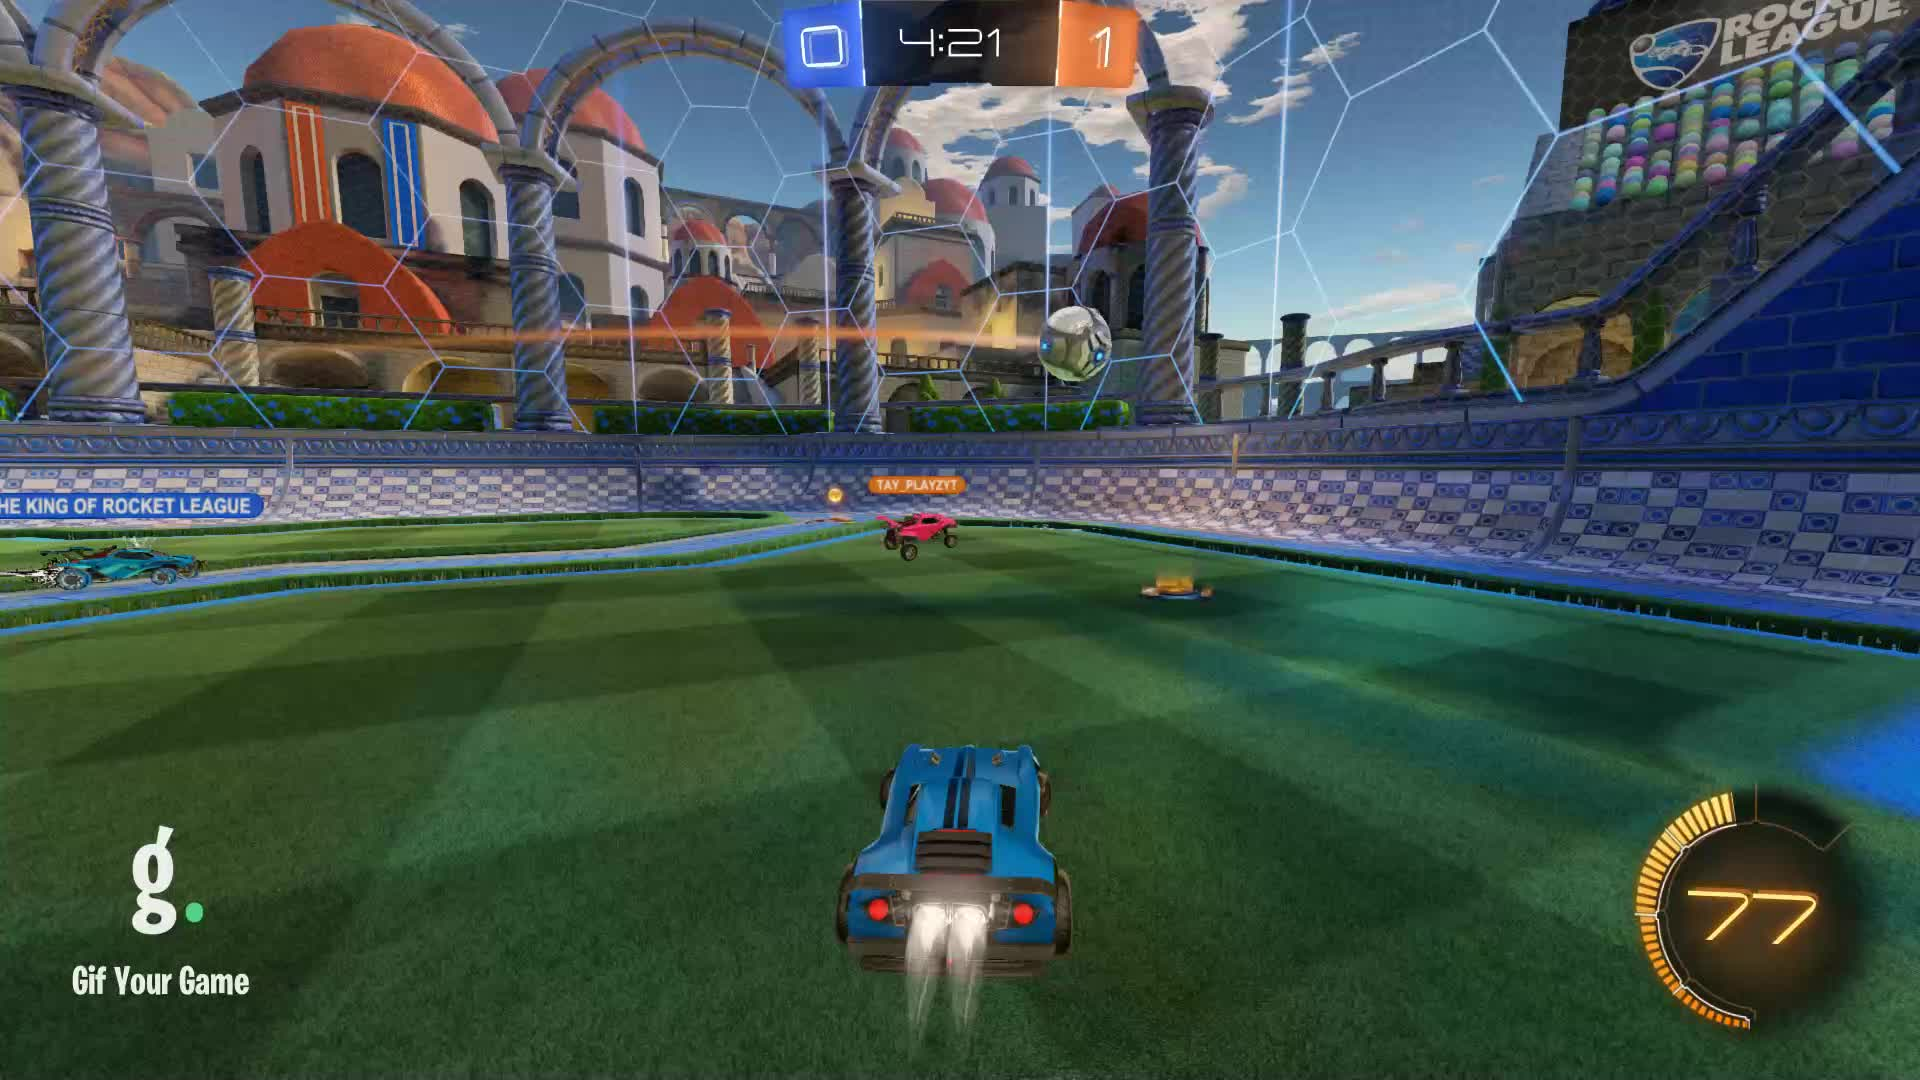 Gif Your Game, GifYourGame, Goal, Rocket League, RocketLeague, Goal 2: Gif Your Game GIFs